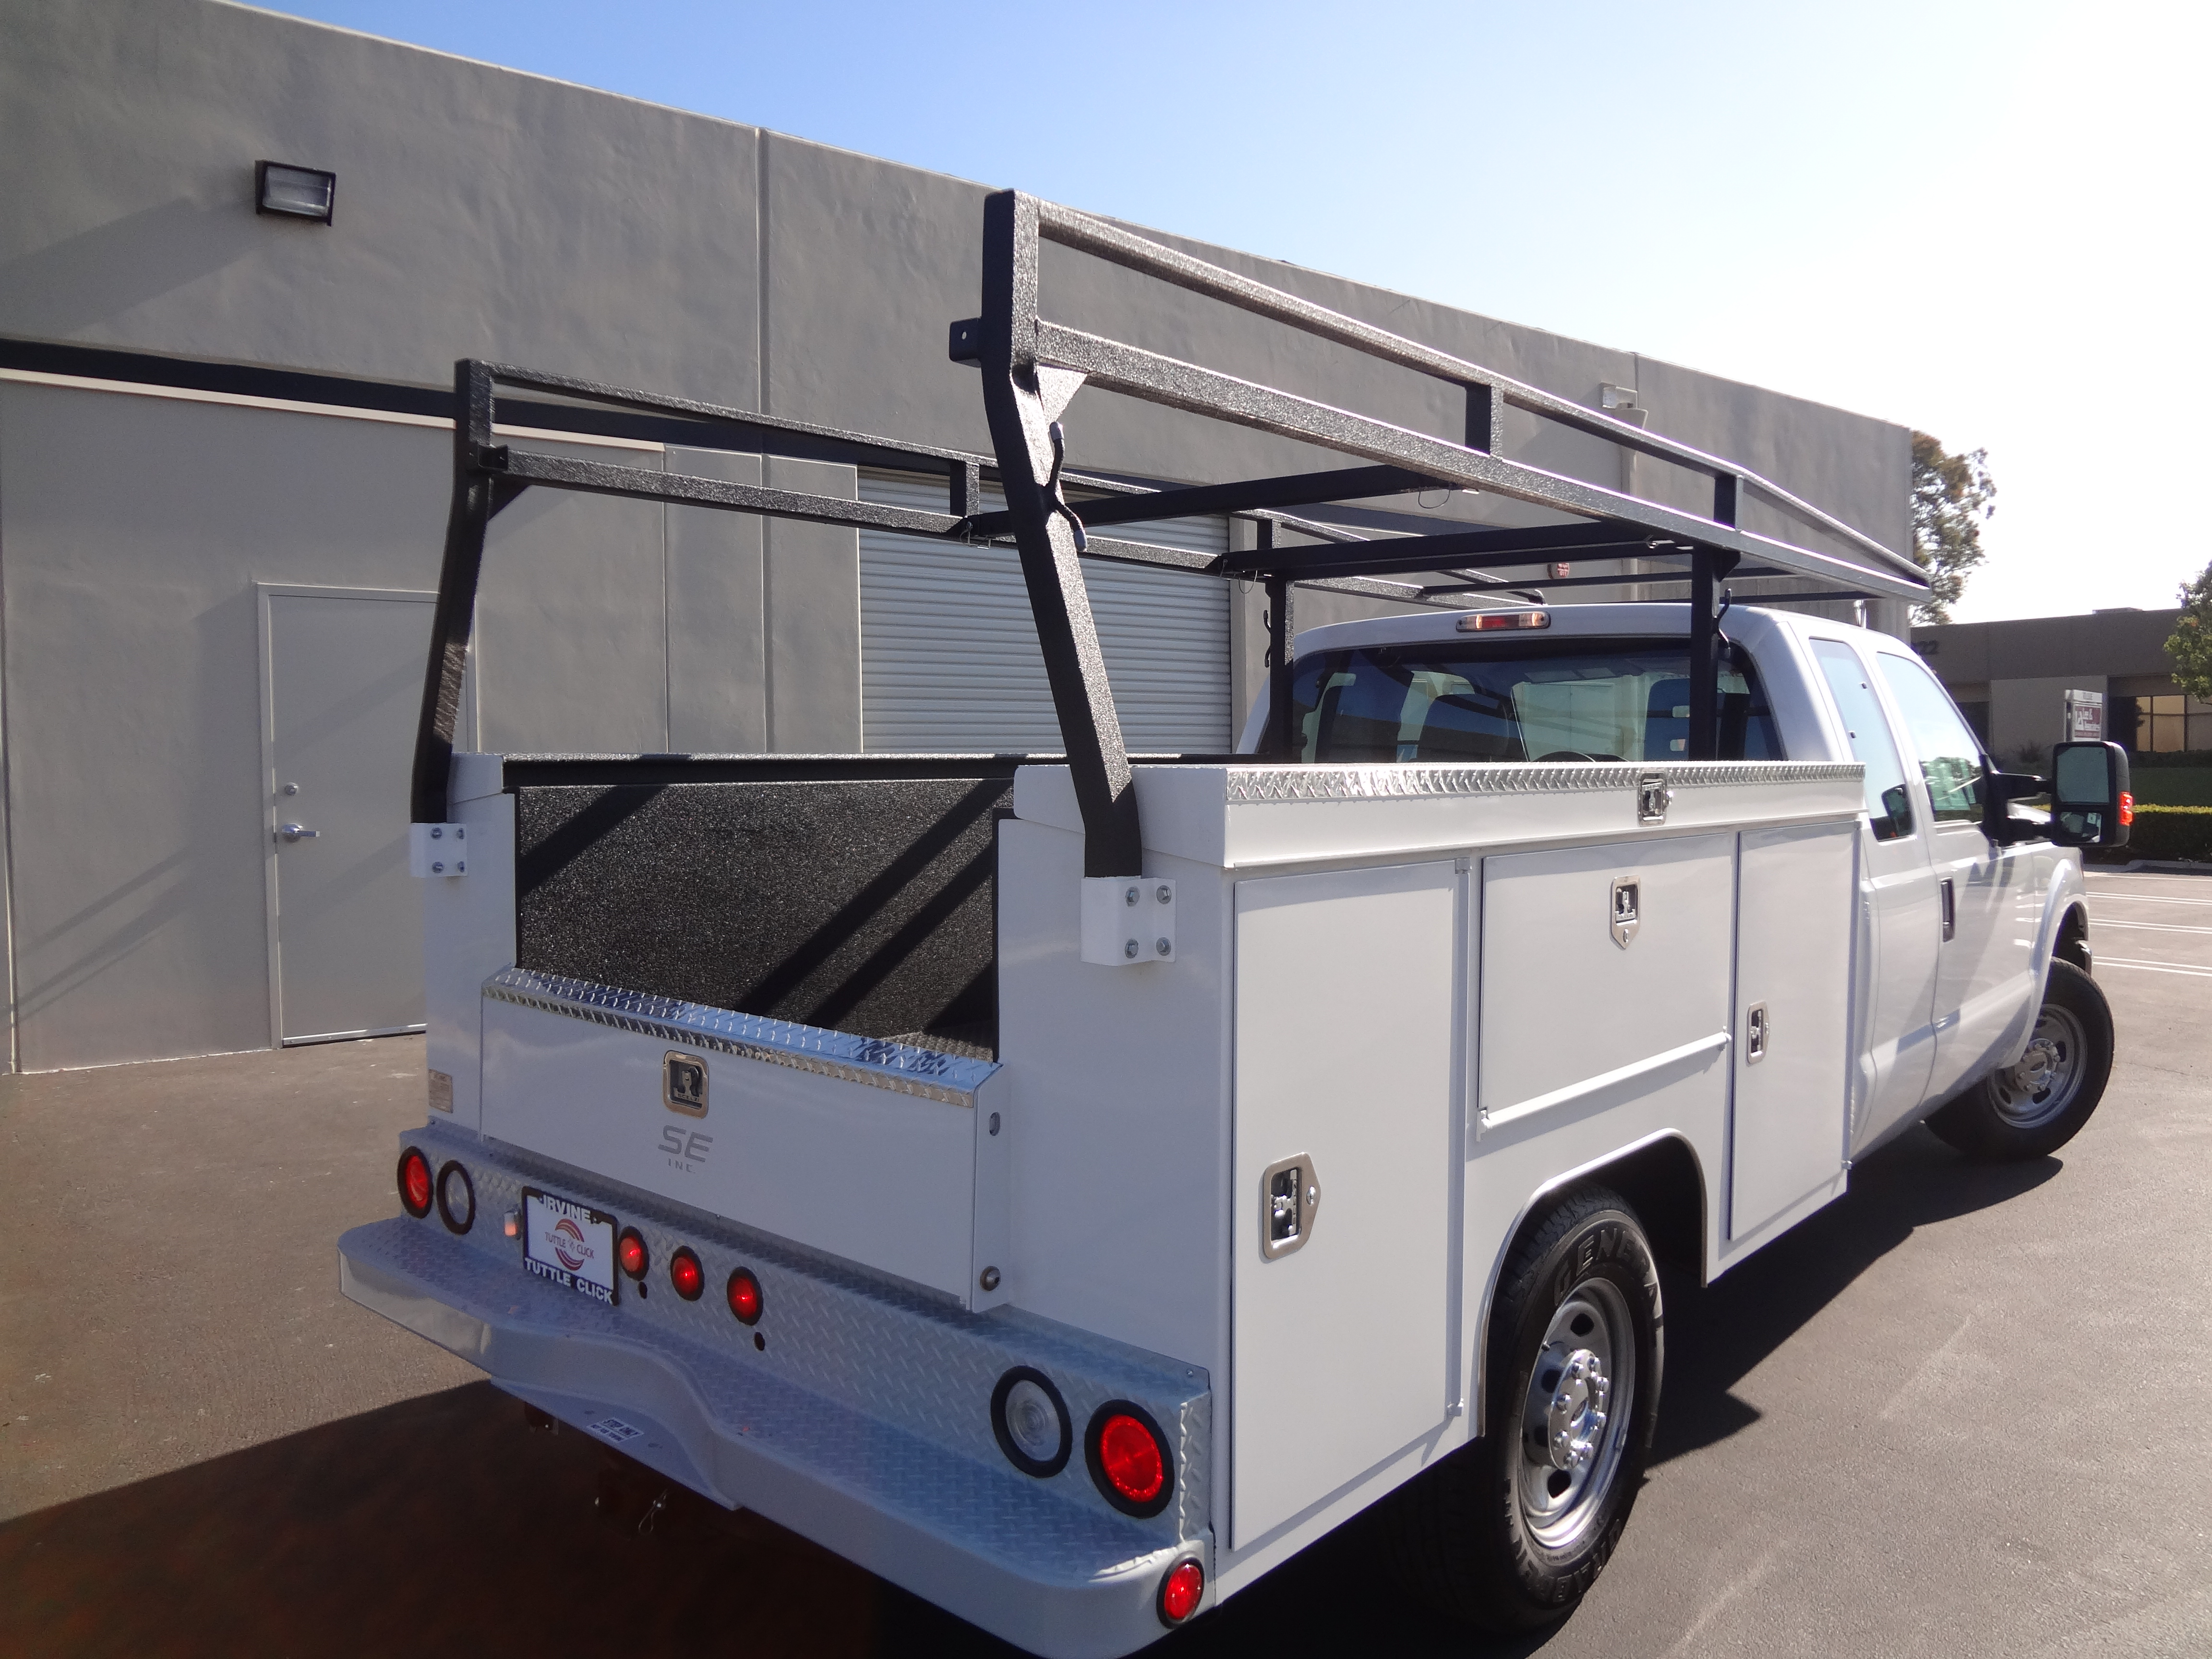 line truck get apex uput powersports contractor quotations overhang guides cab deals ladder cheap on rage rack with shopping pickup find at